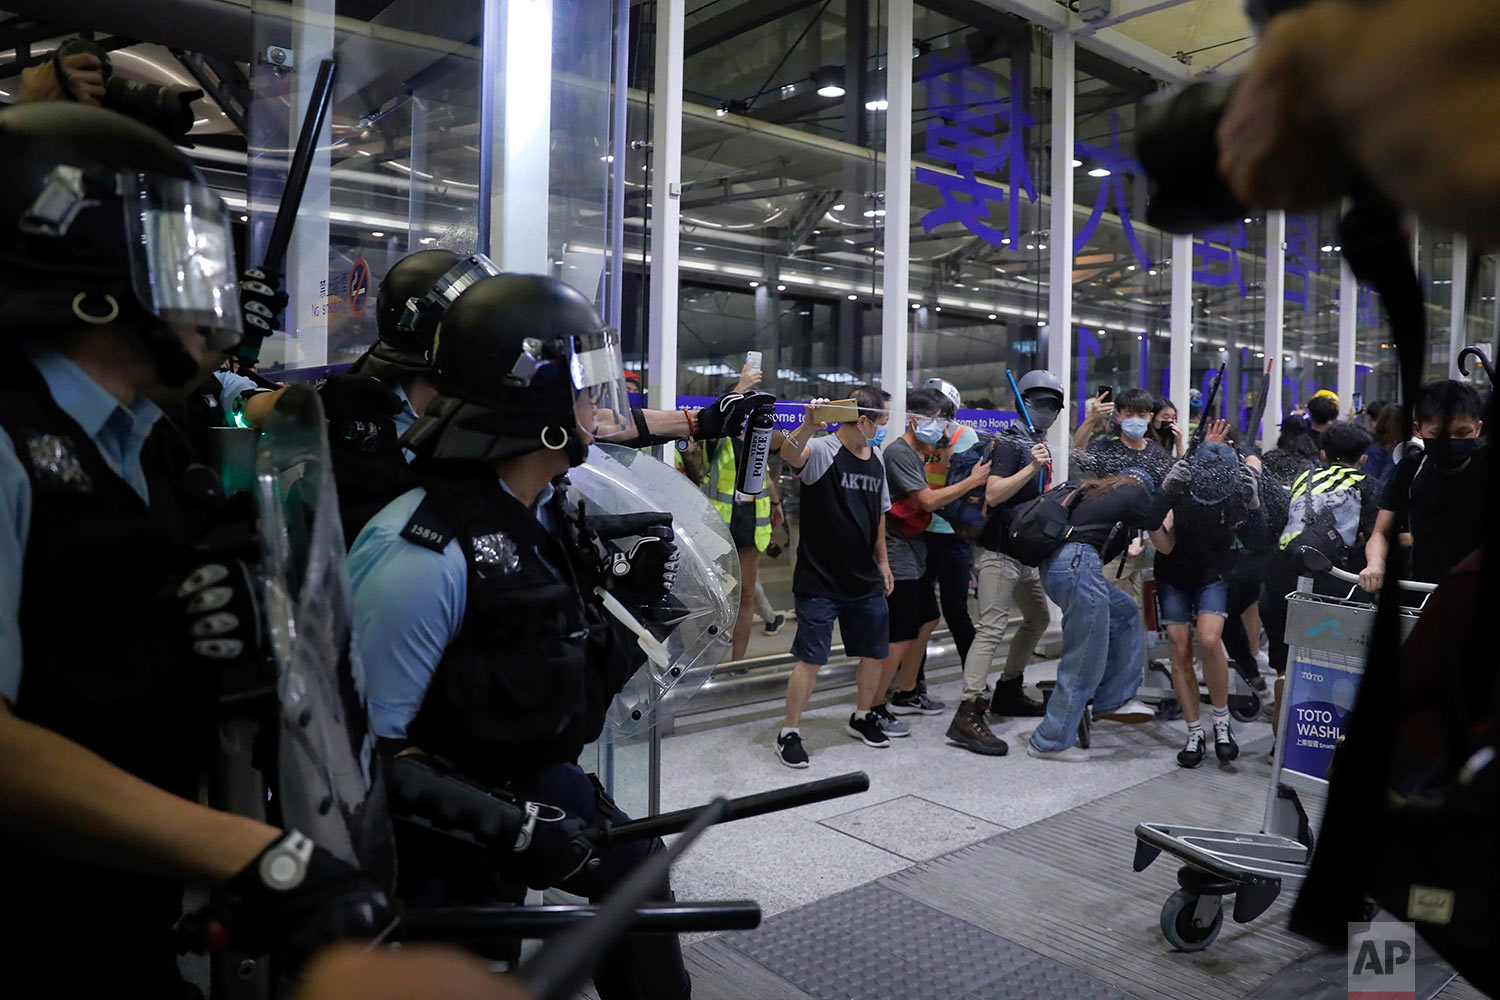 Policemen in riot gears use pepper spray on the protesters during a demonstration at the Airport in Hong Kong, Tuesday, Aug. 13, 2019. (AP Photo/Kin Cheung)